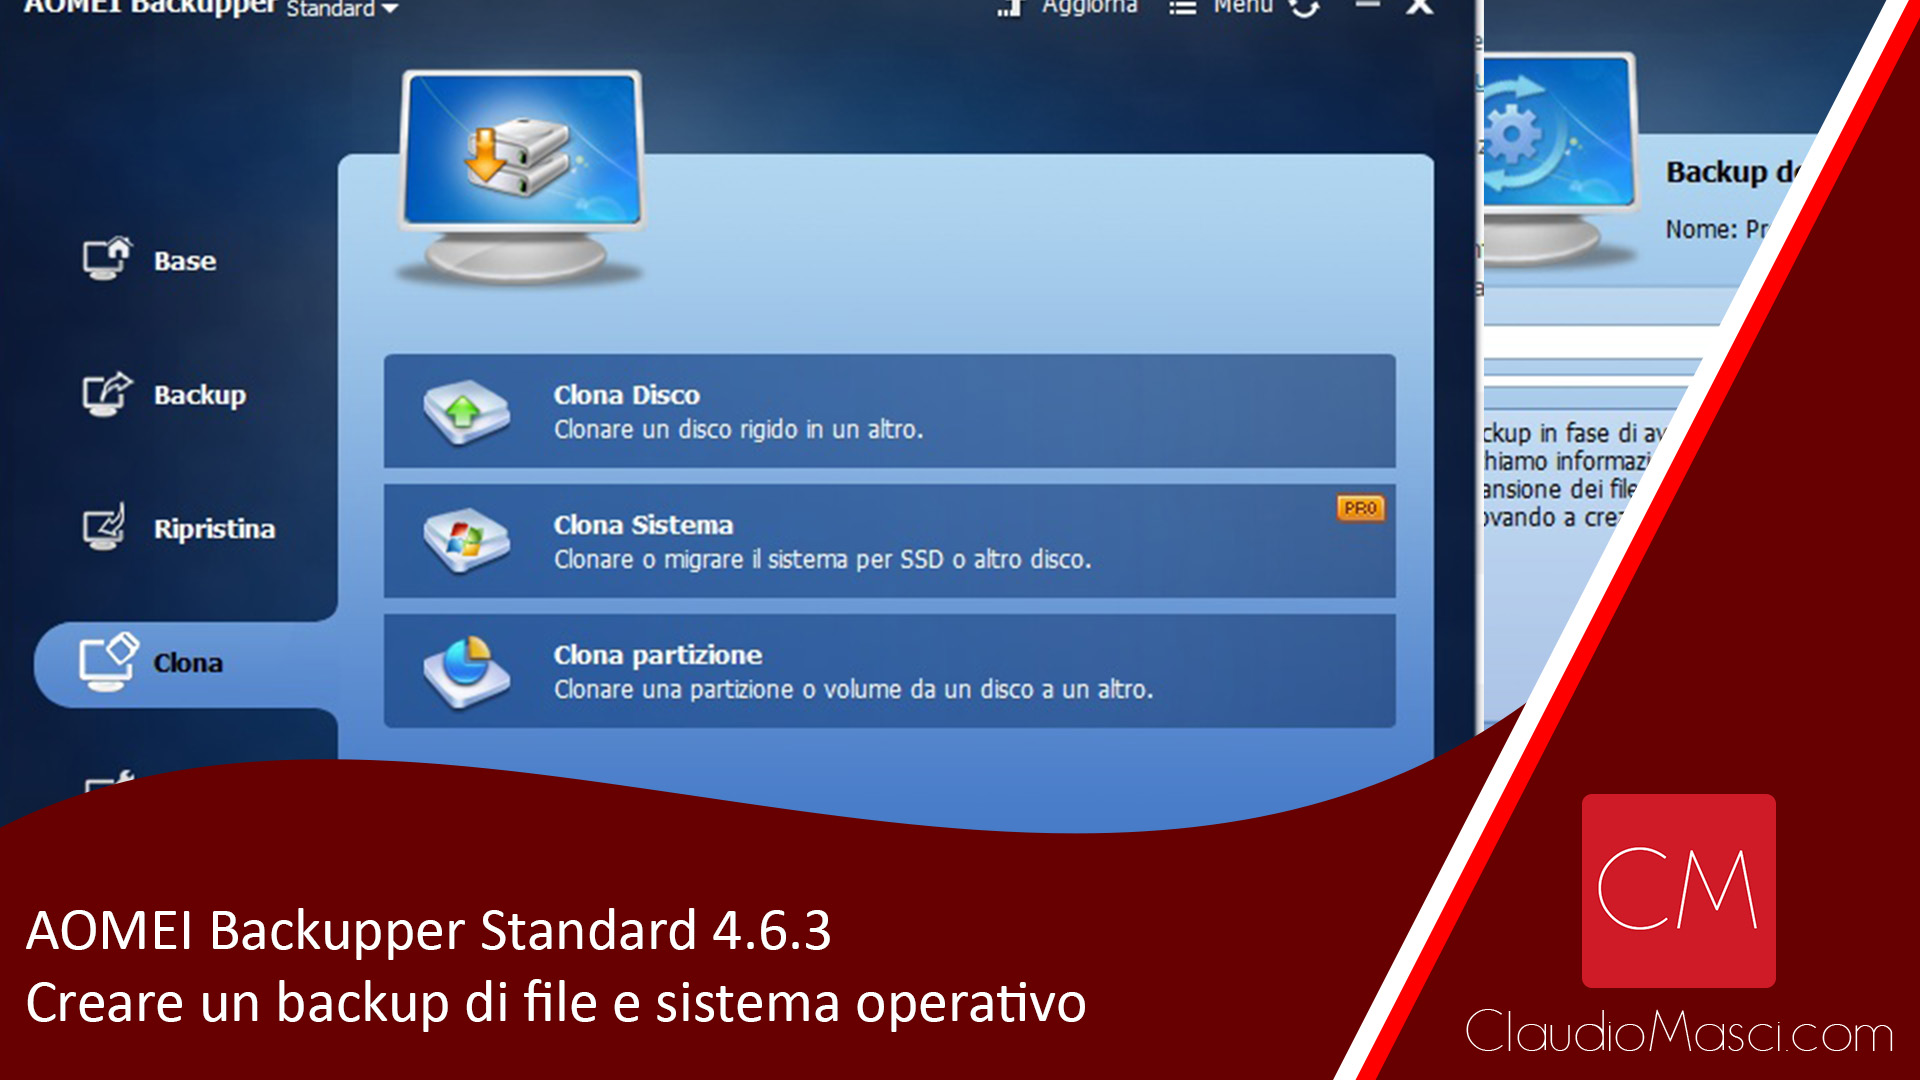 AOMEI Backupper Standard 4.6.3 – Creare un backup di file e sistema operativo